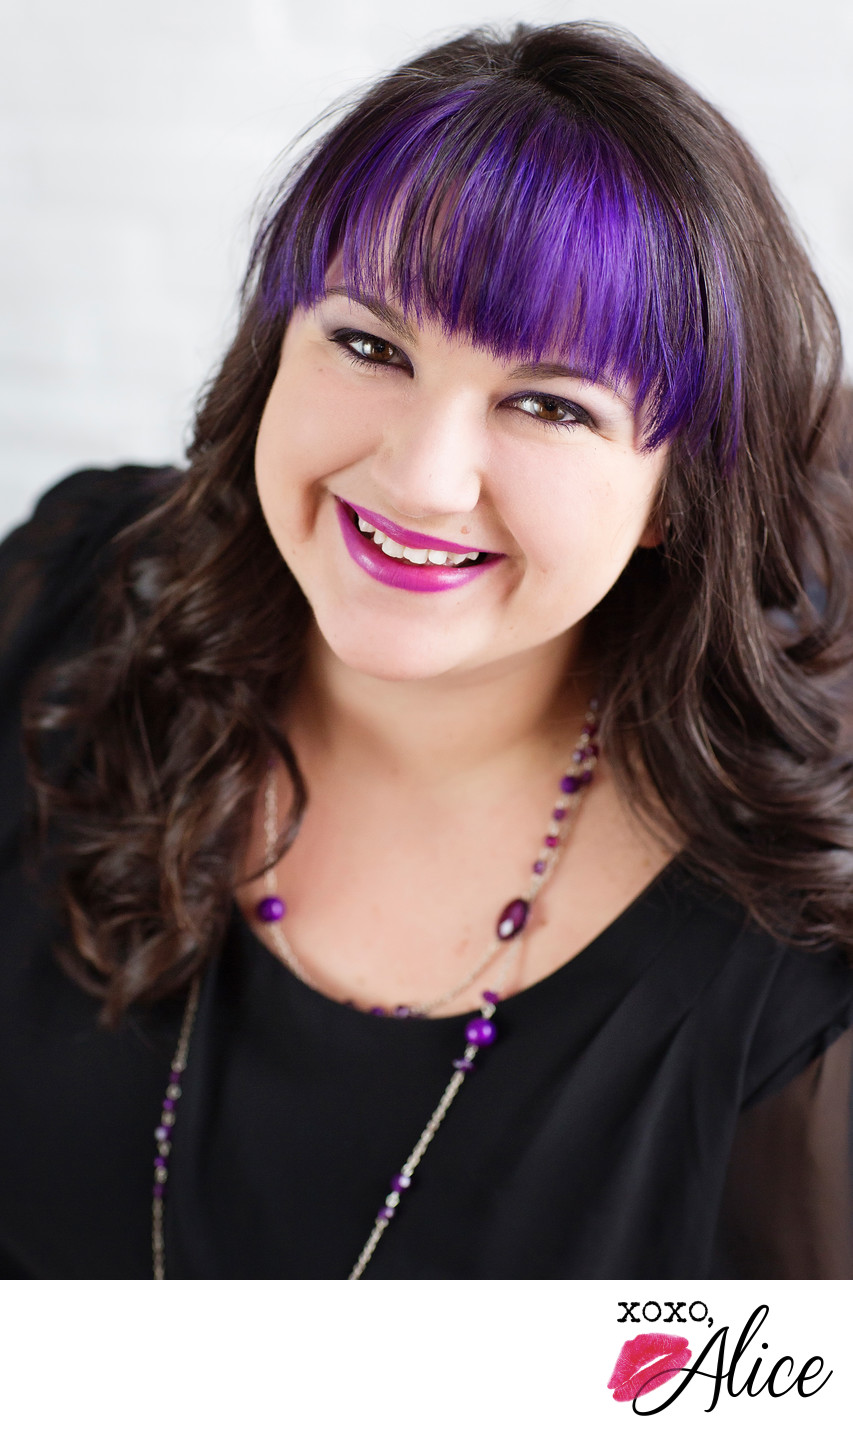 hairstylist headshots for pros xoxo alice st louis